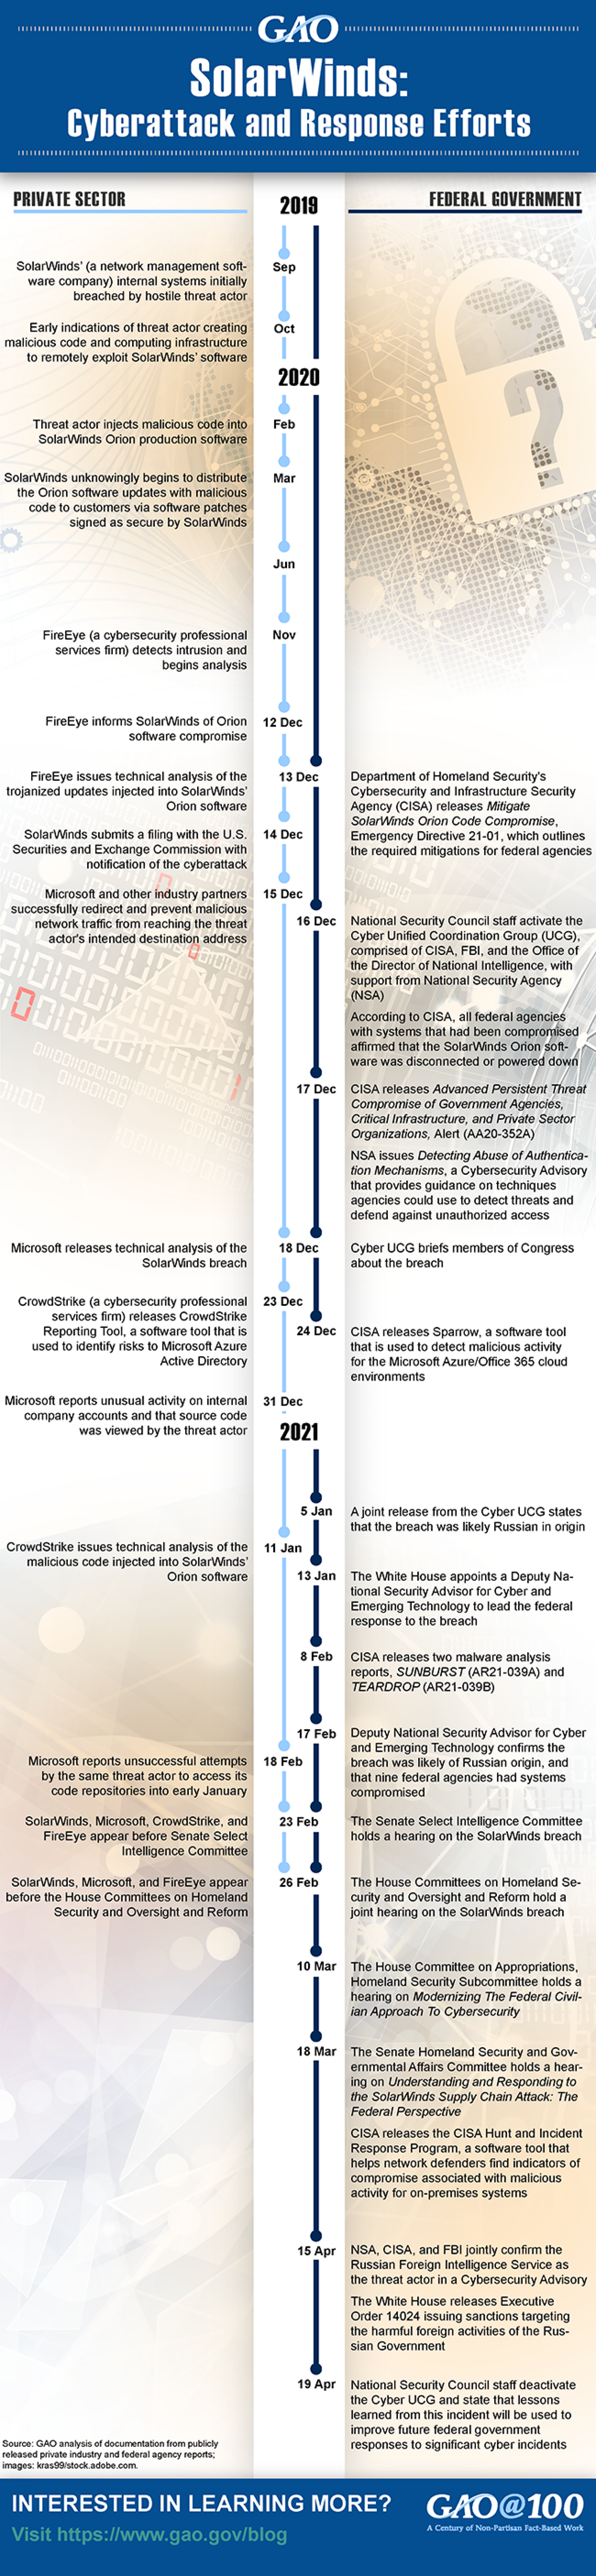 GAO SolarWinds Infographic April 2021